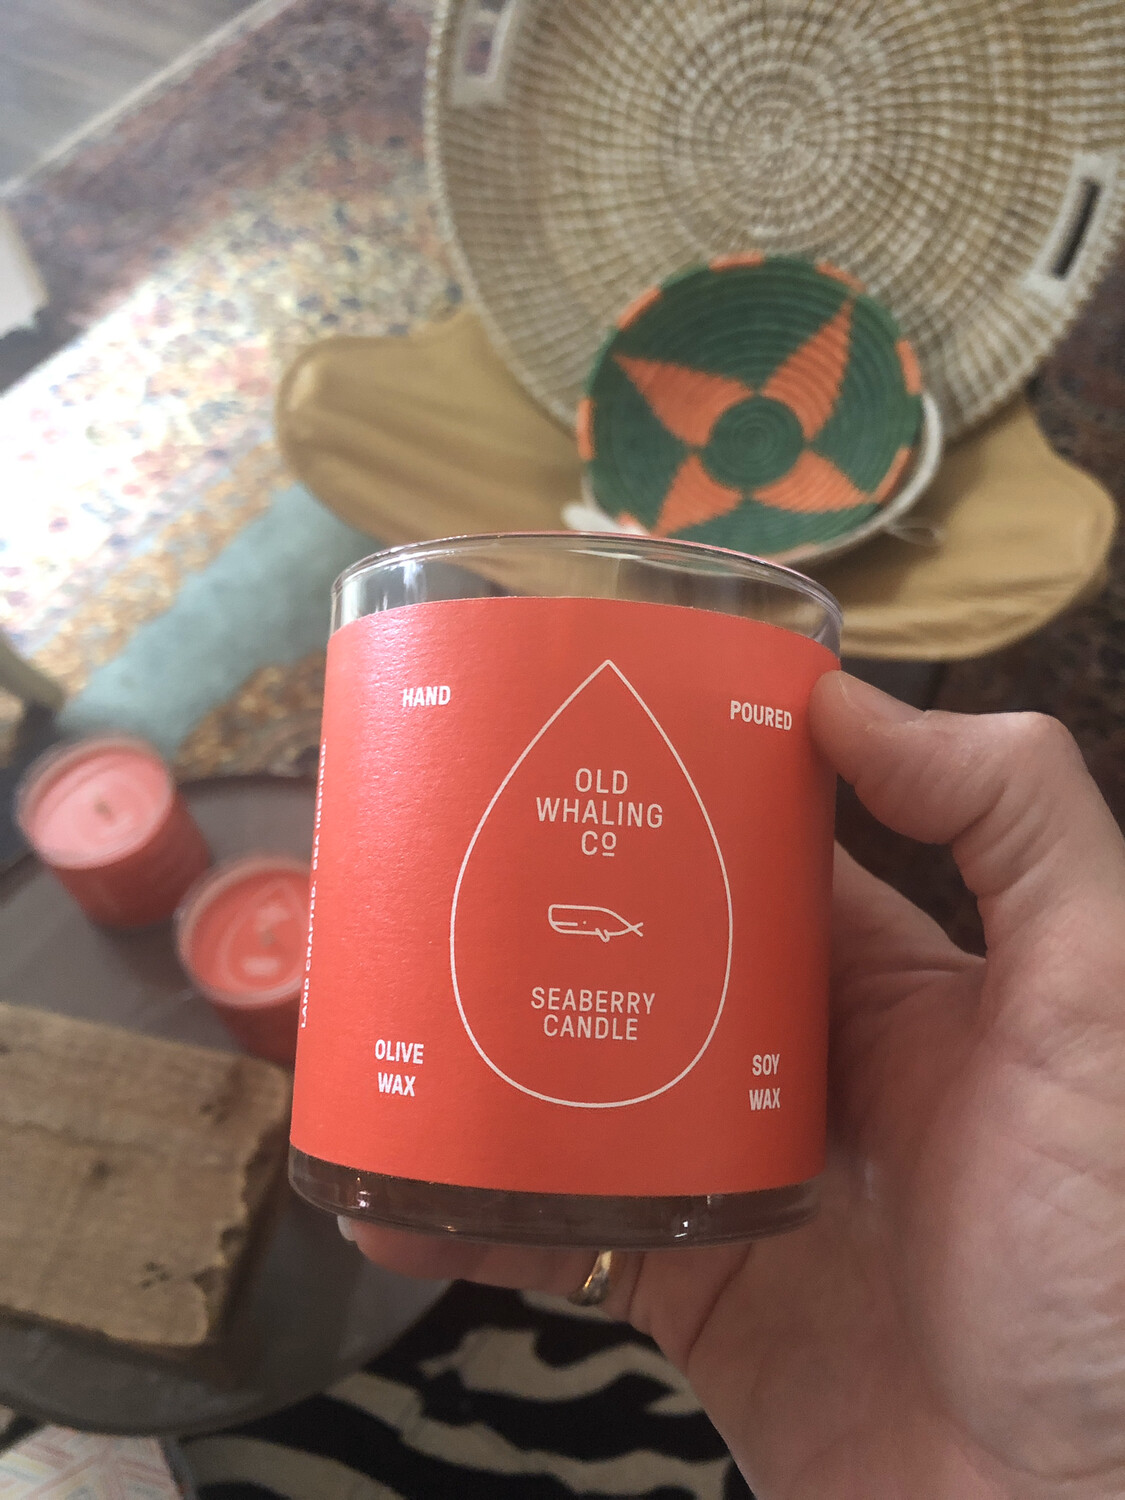 Old Whaling Company Seaberry Candle